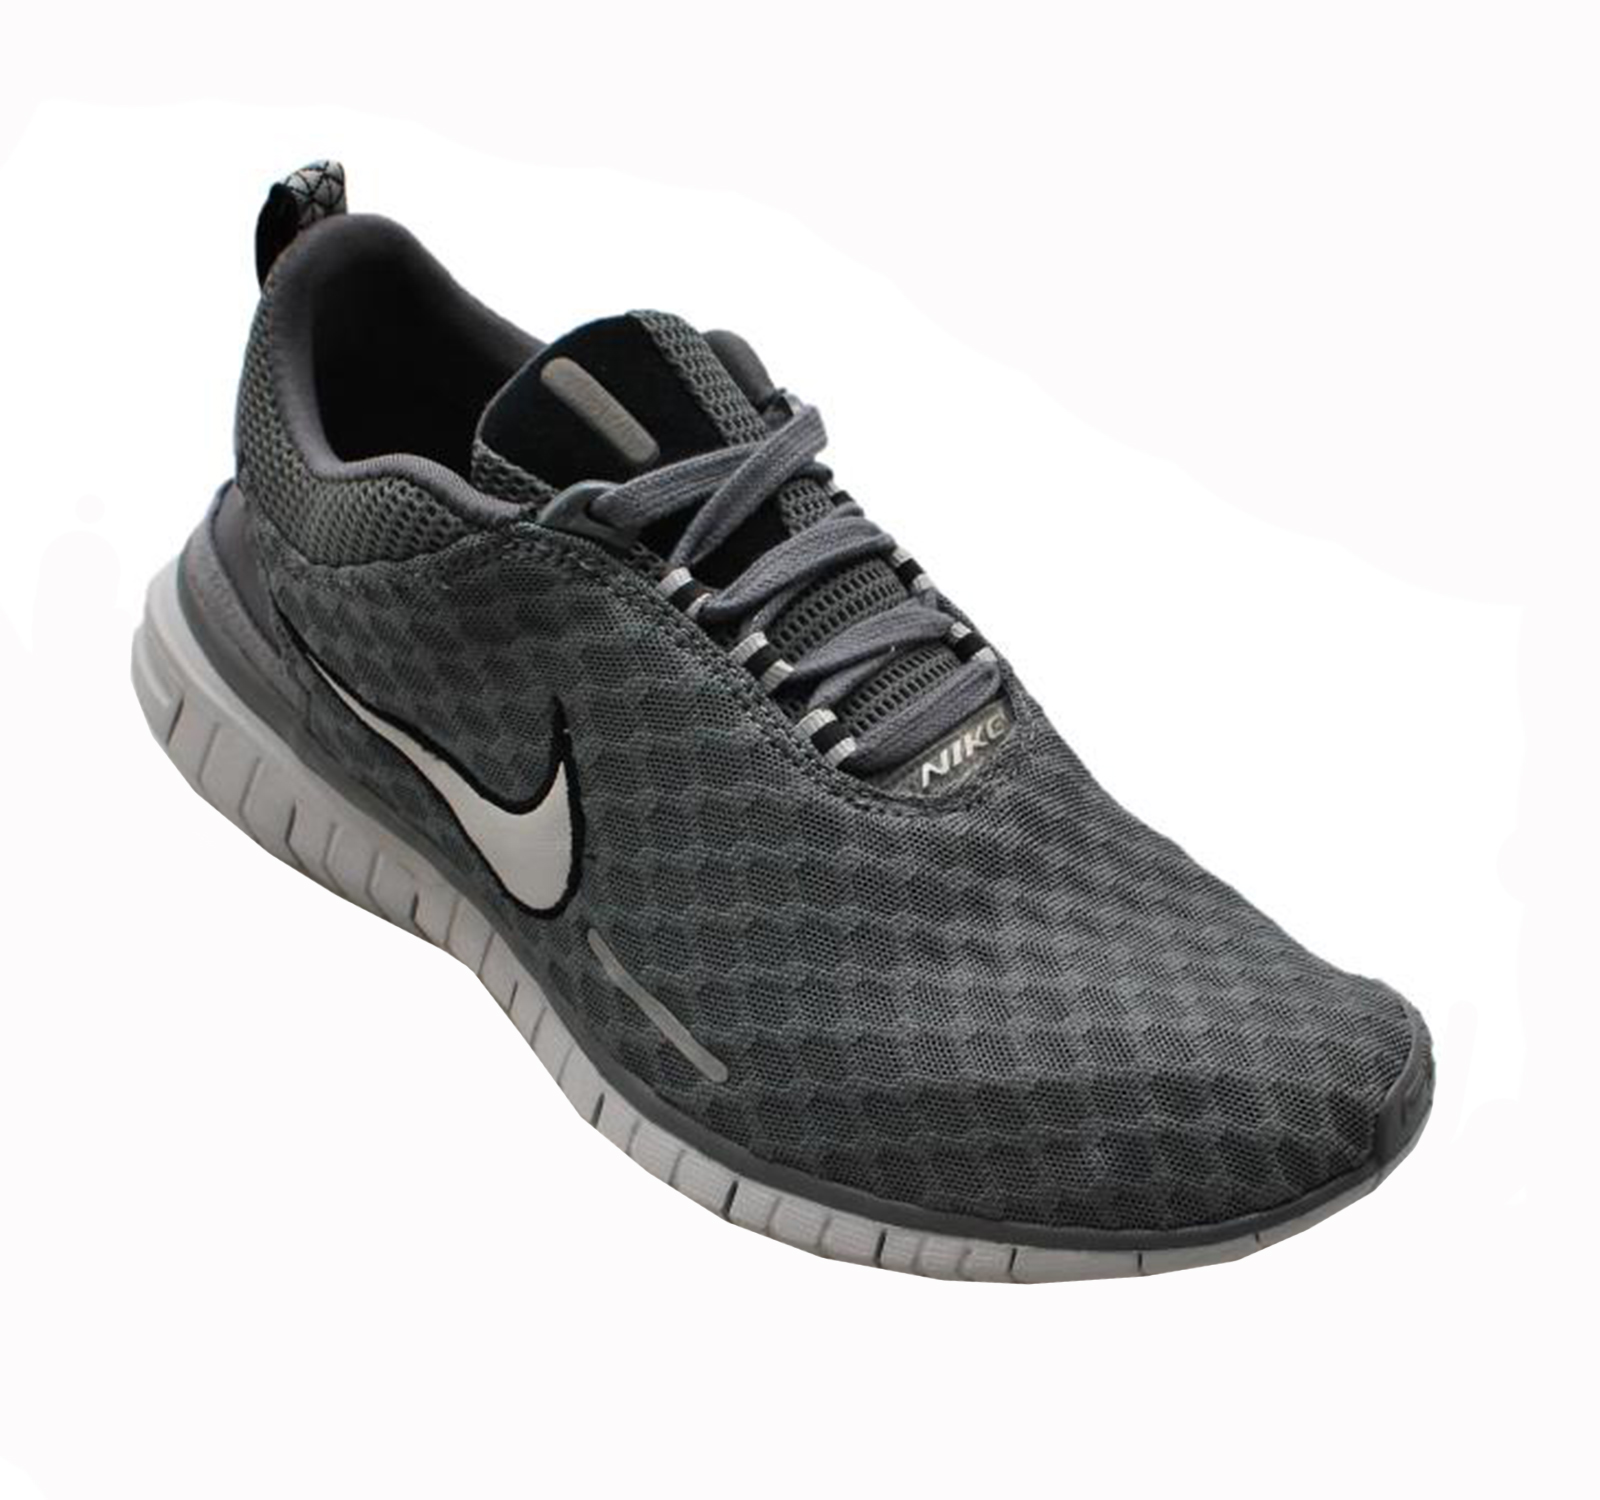 quality design df879 9d9d0 ... norway where to buy nike free og 41 2fb3c 76073 1d599 54a15